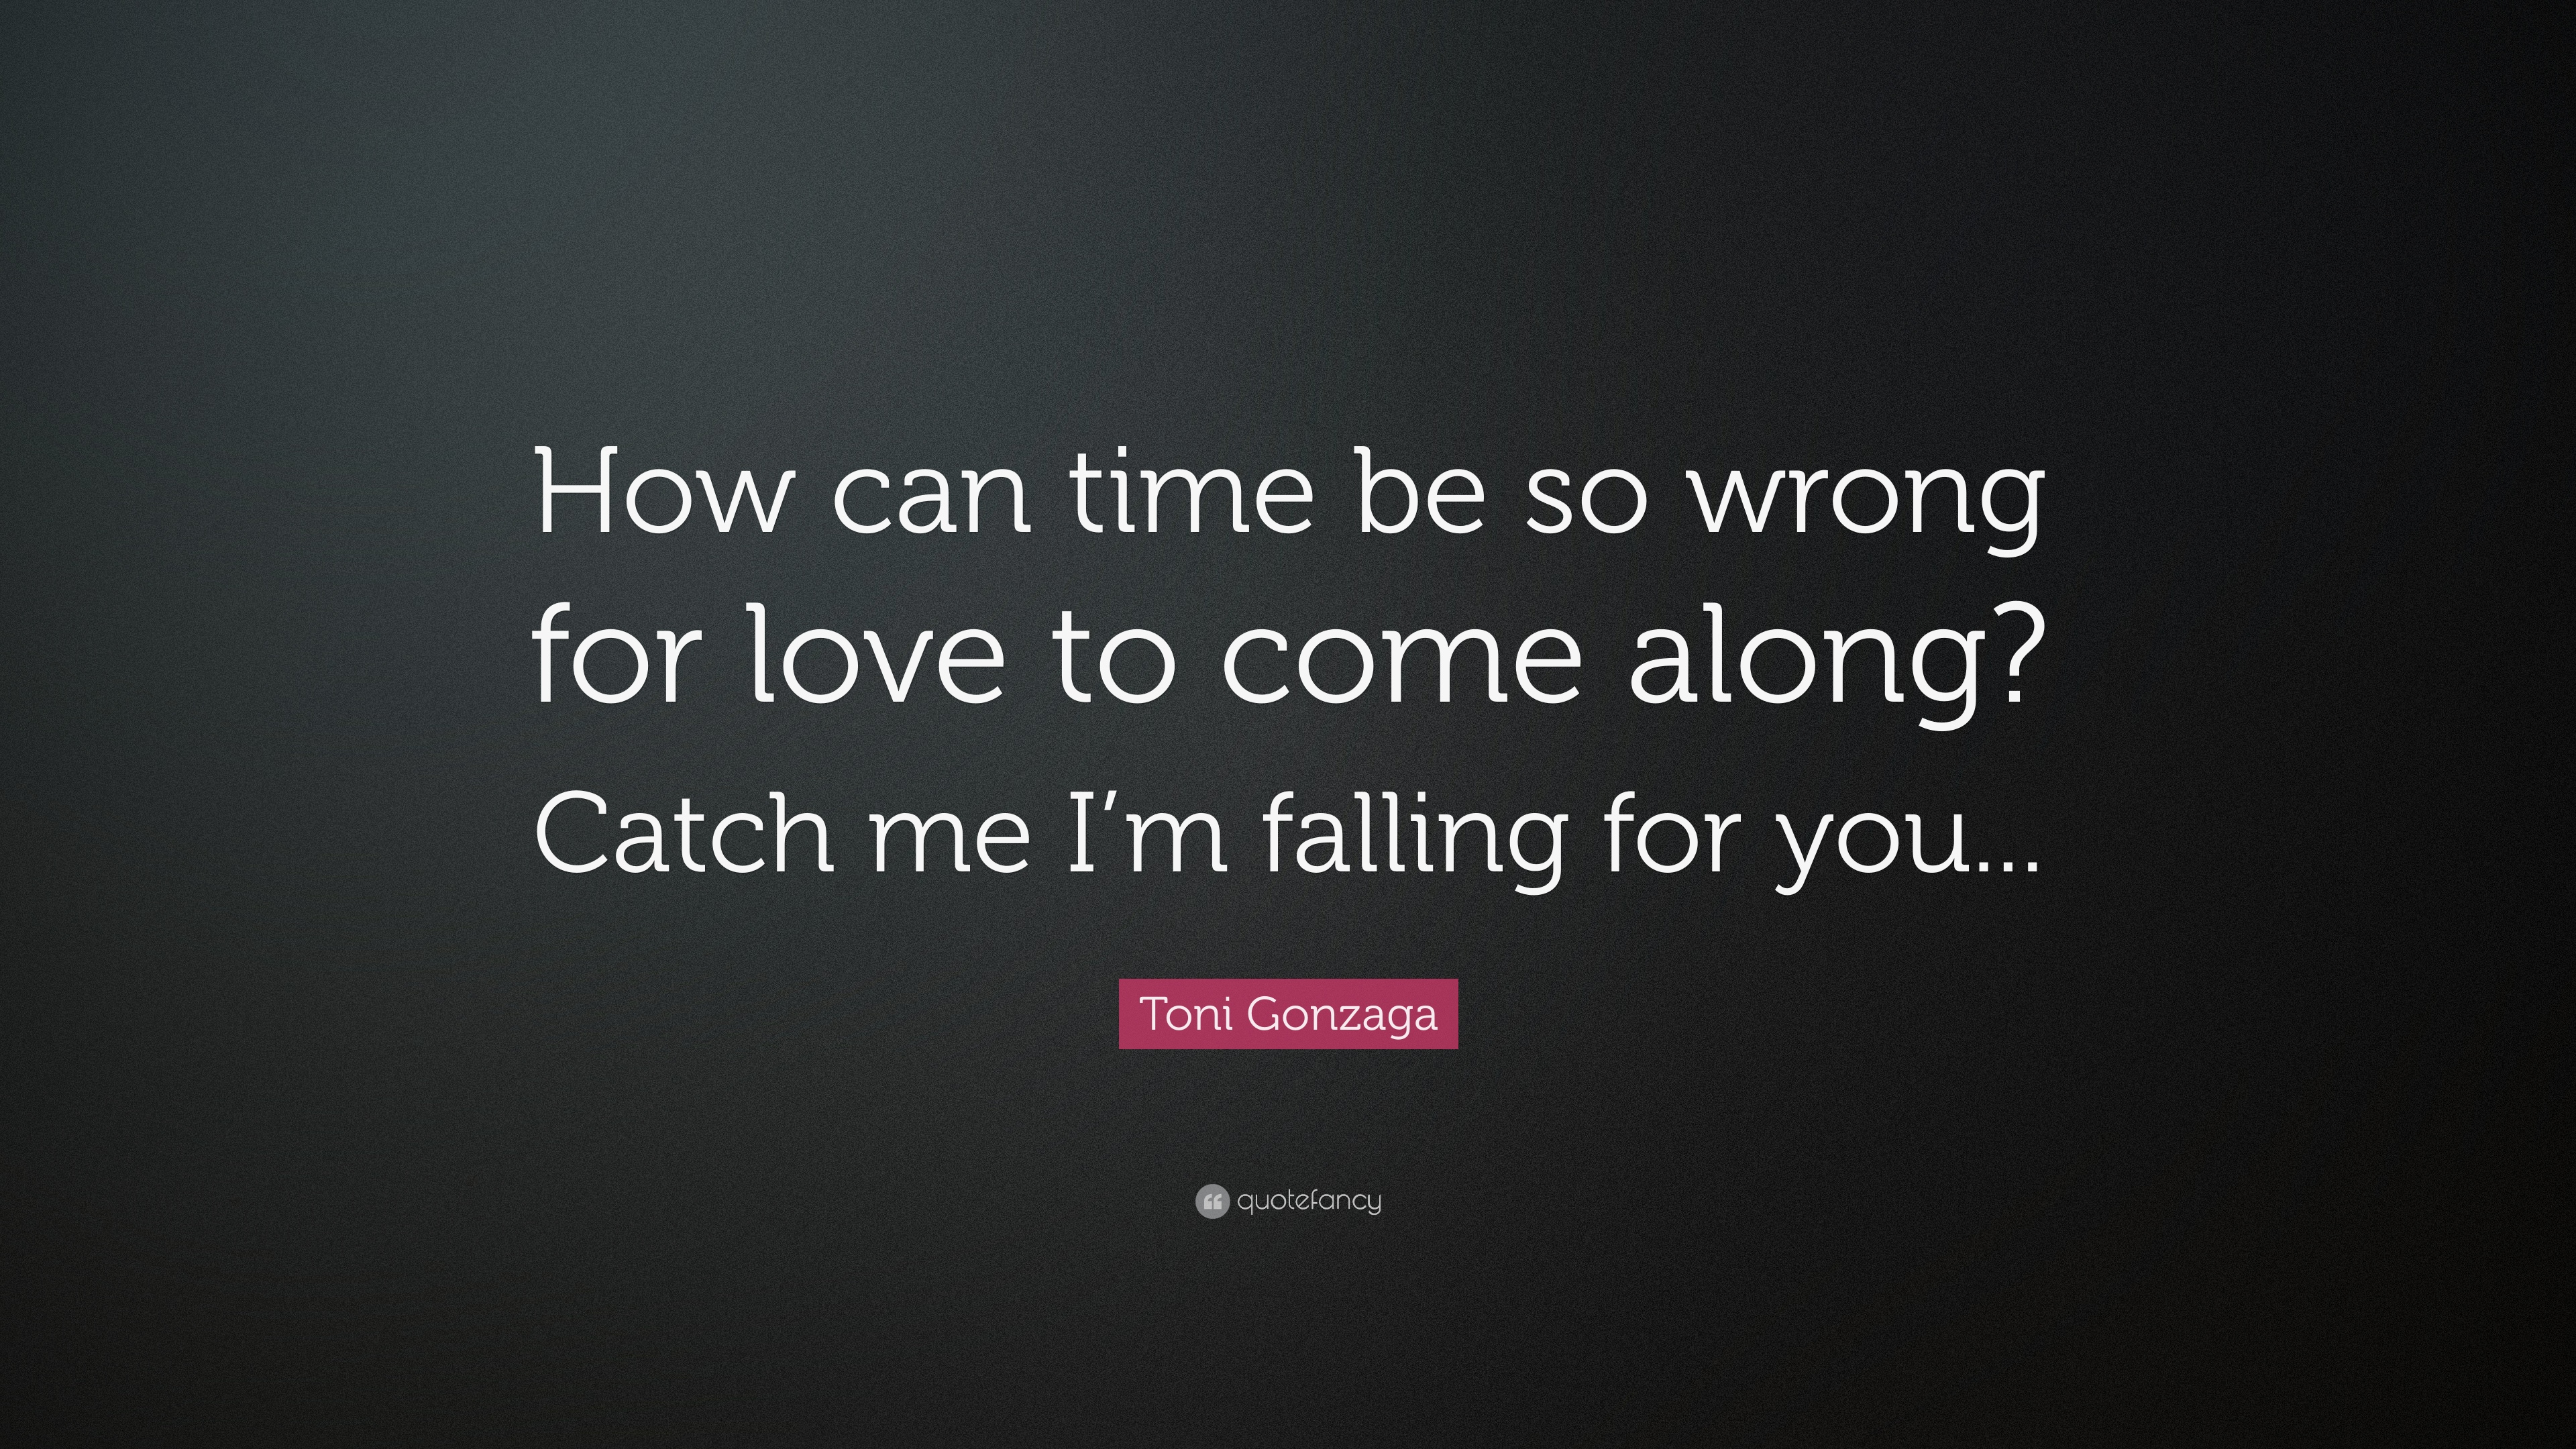 "Toni Gonzaga Quote ""How can time be so wrong for love to e along"